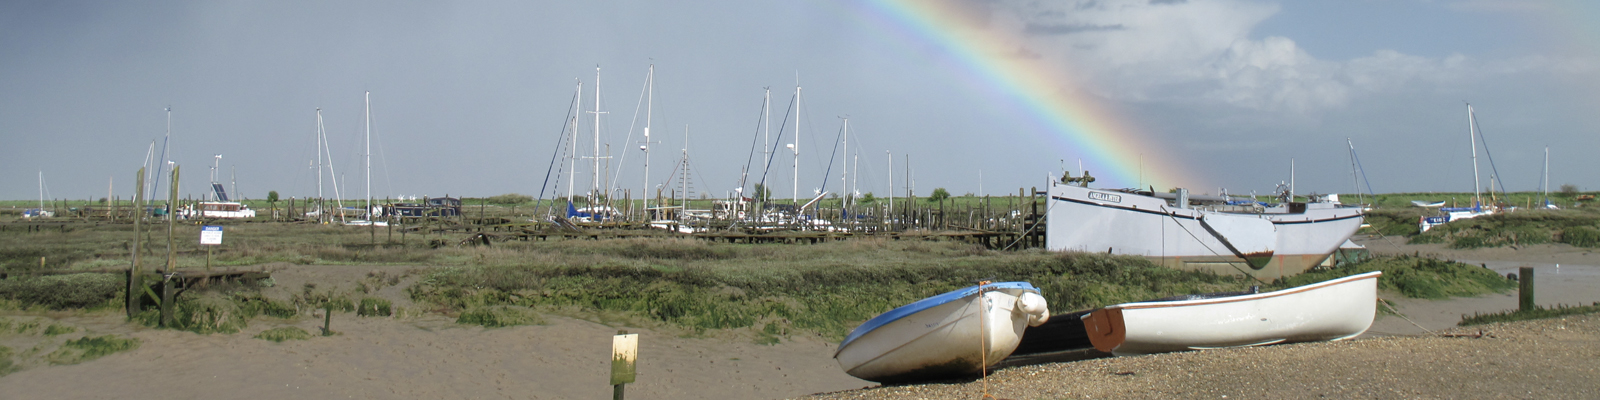 Tollesbury Parish Council, Roles And Responsibilities, Rainbow Over Creek At Low Tide